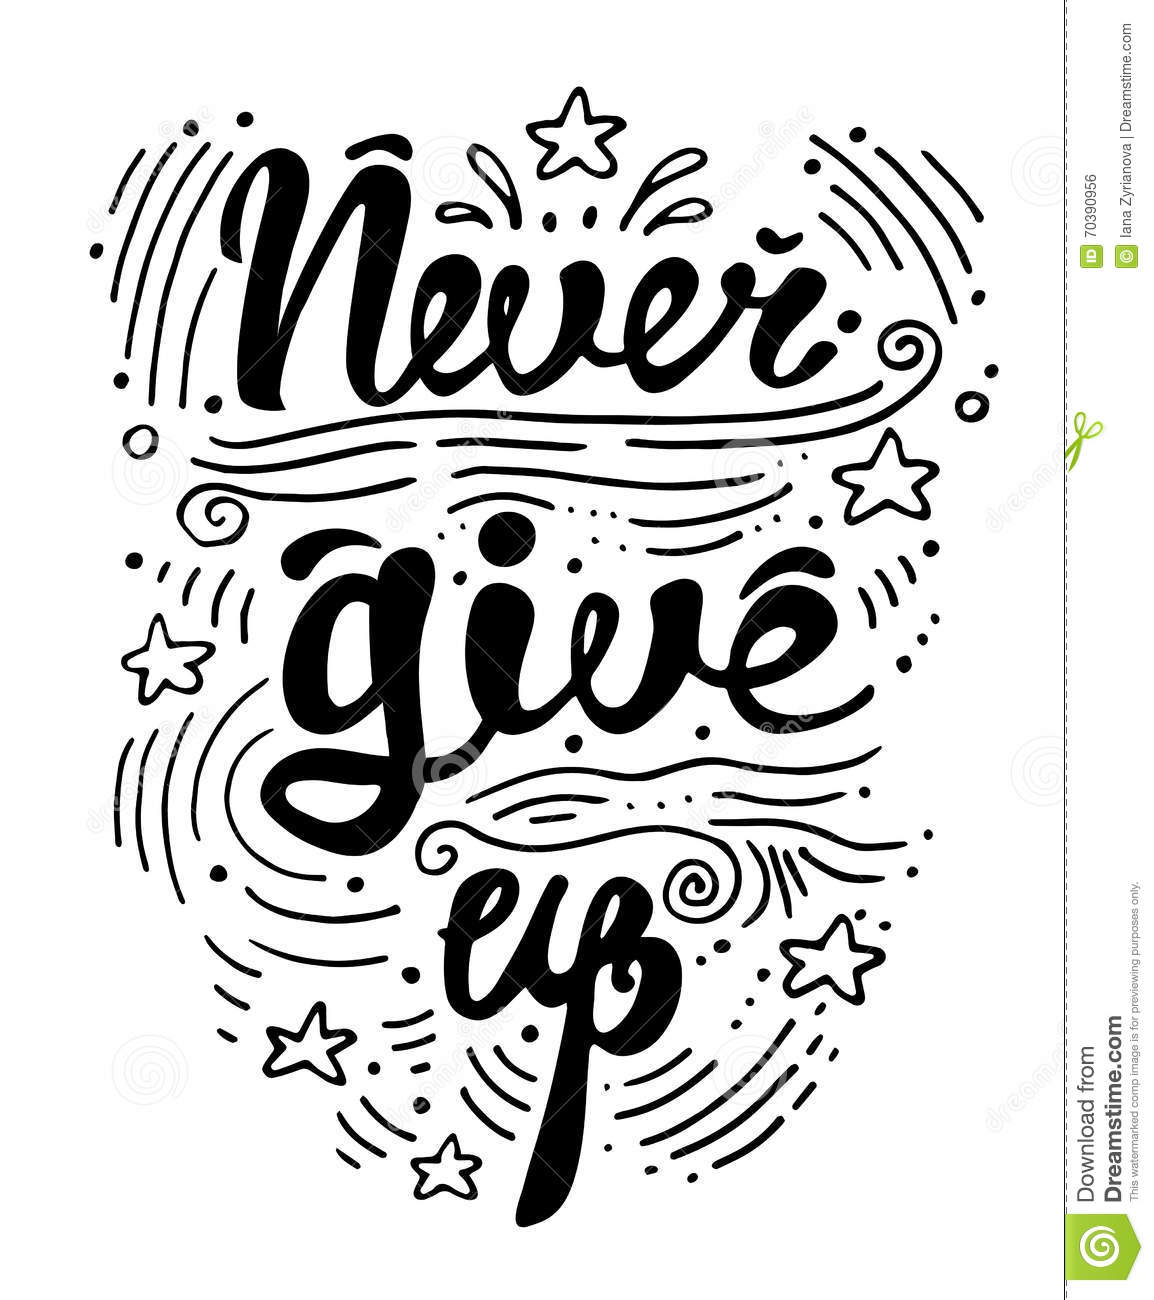 essay on personal motivator never give up Personal finance inc 5000 the 2017 us list 35 quotes about perseverance and never giving up never give up then.